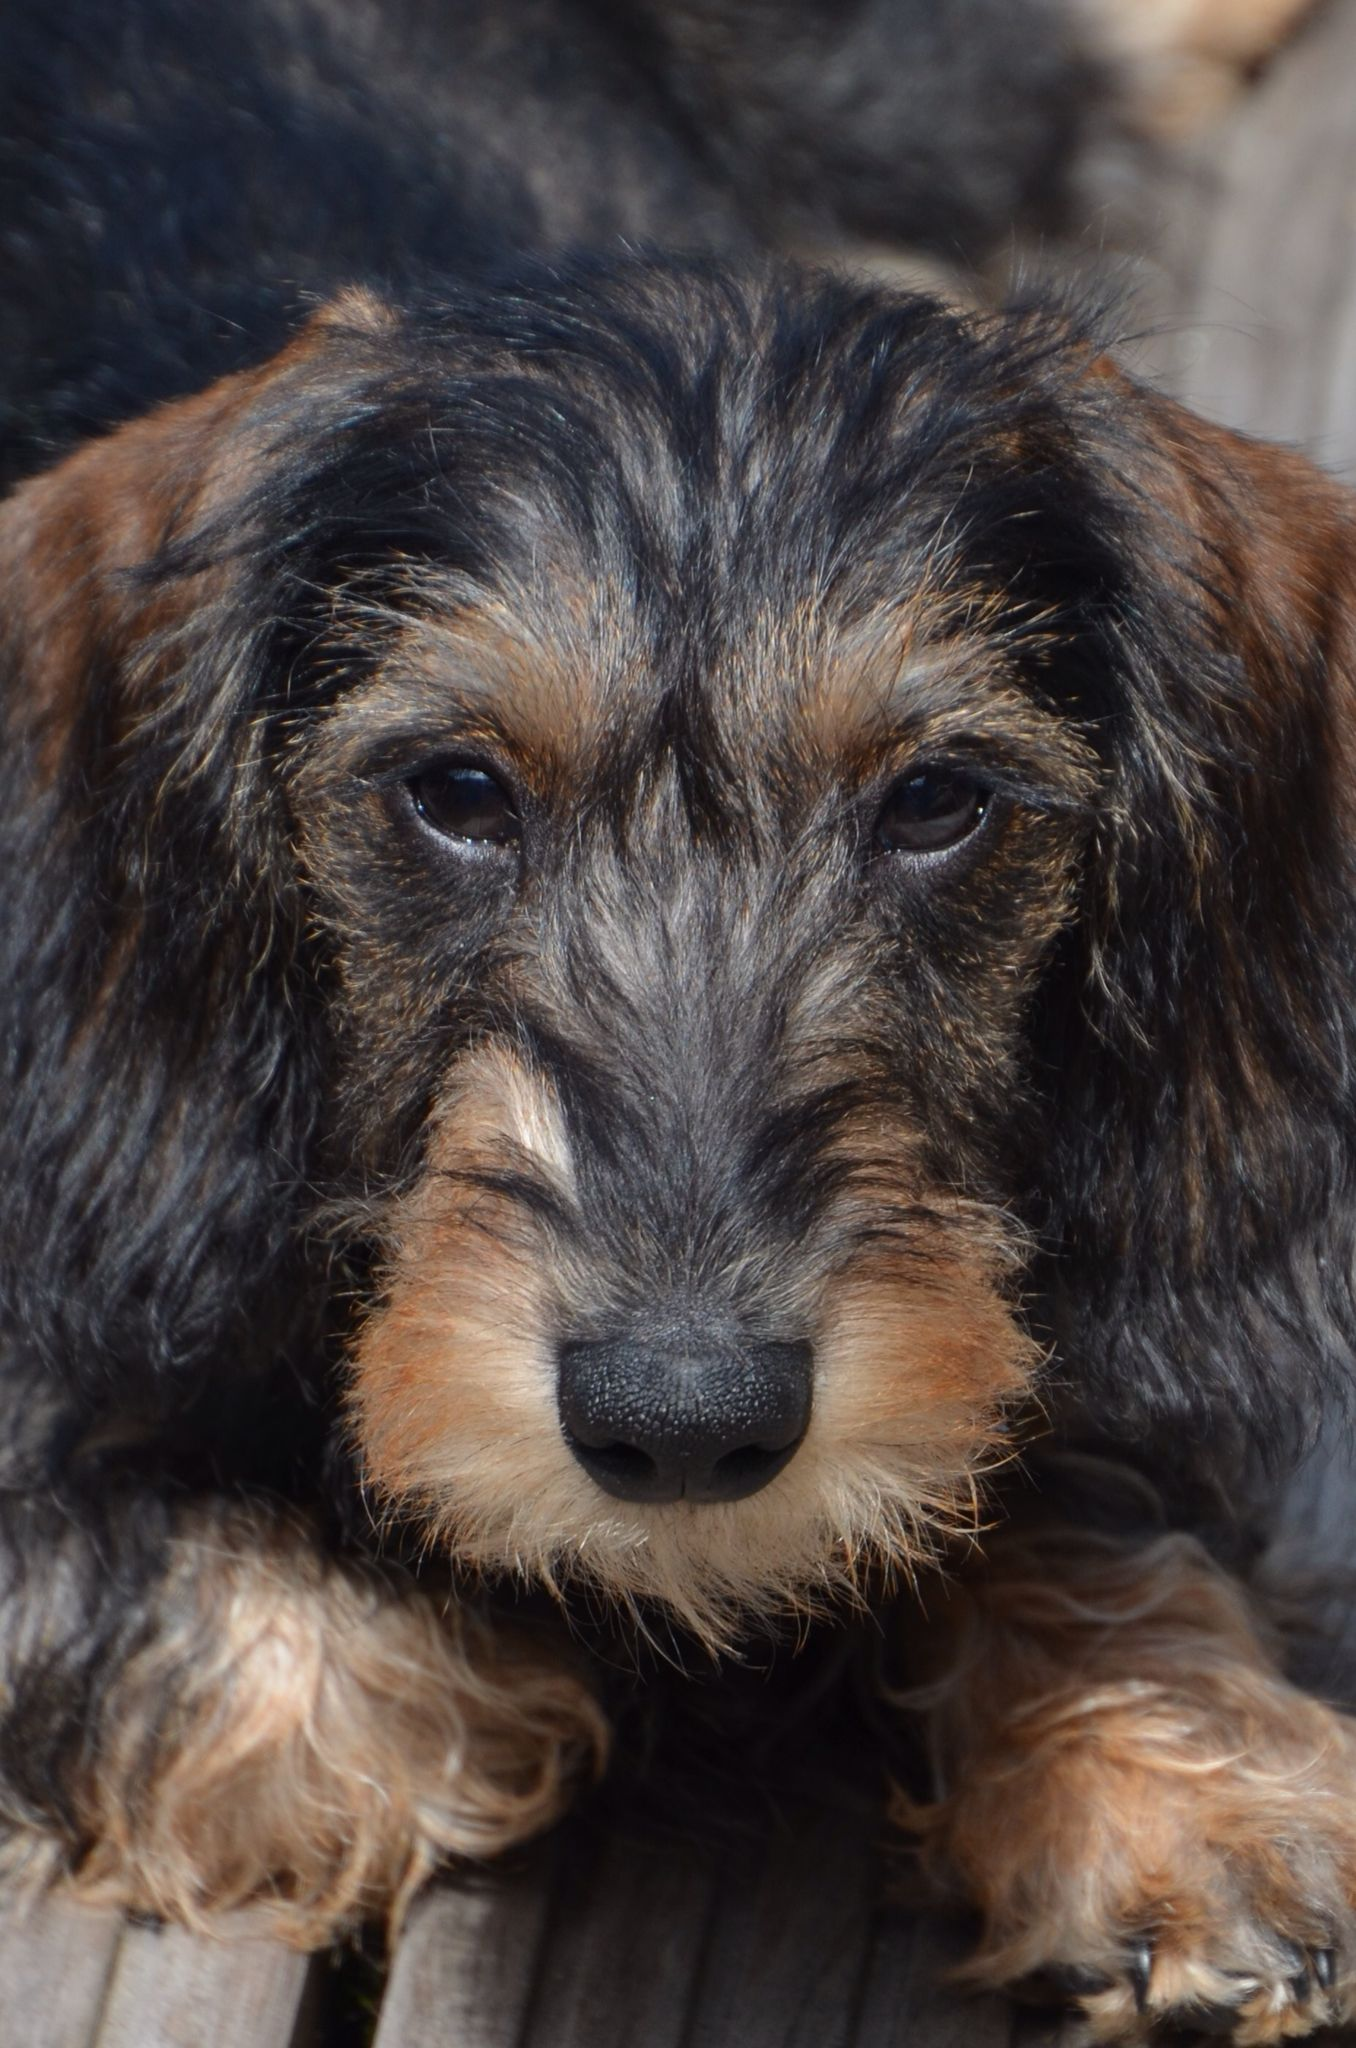 Meet Vic My Wire Haired Dachshund He Is The Cutest And Smartest